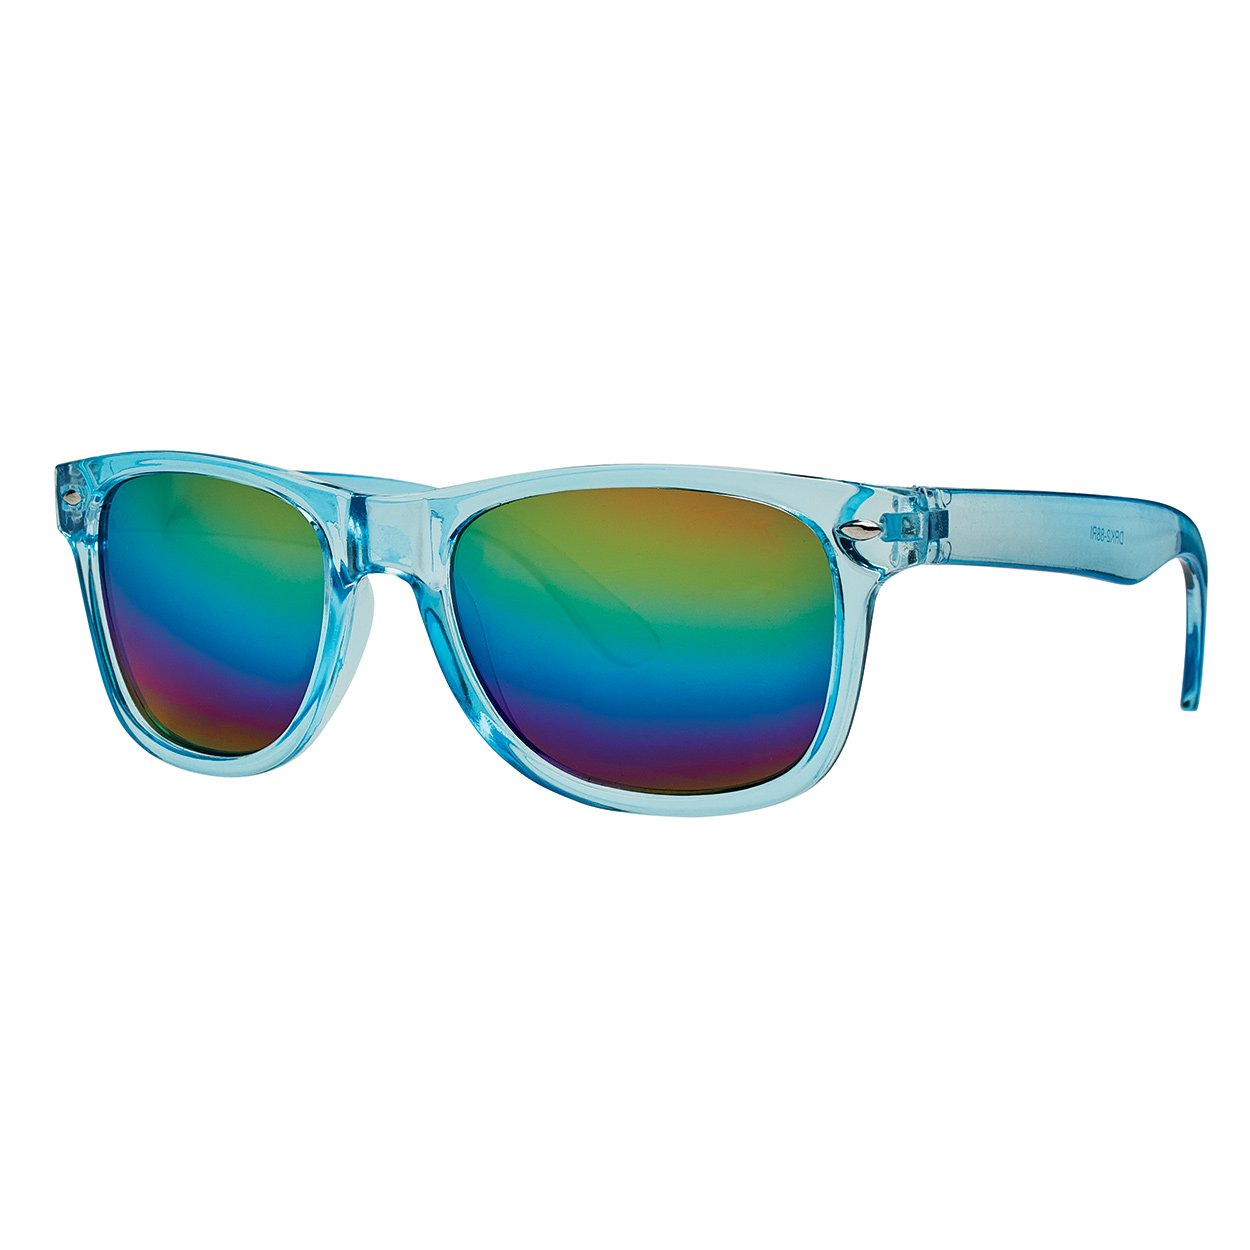 Kids Sunglasses UV 400 Unisex